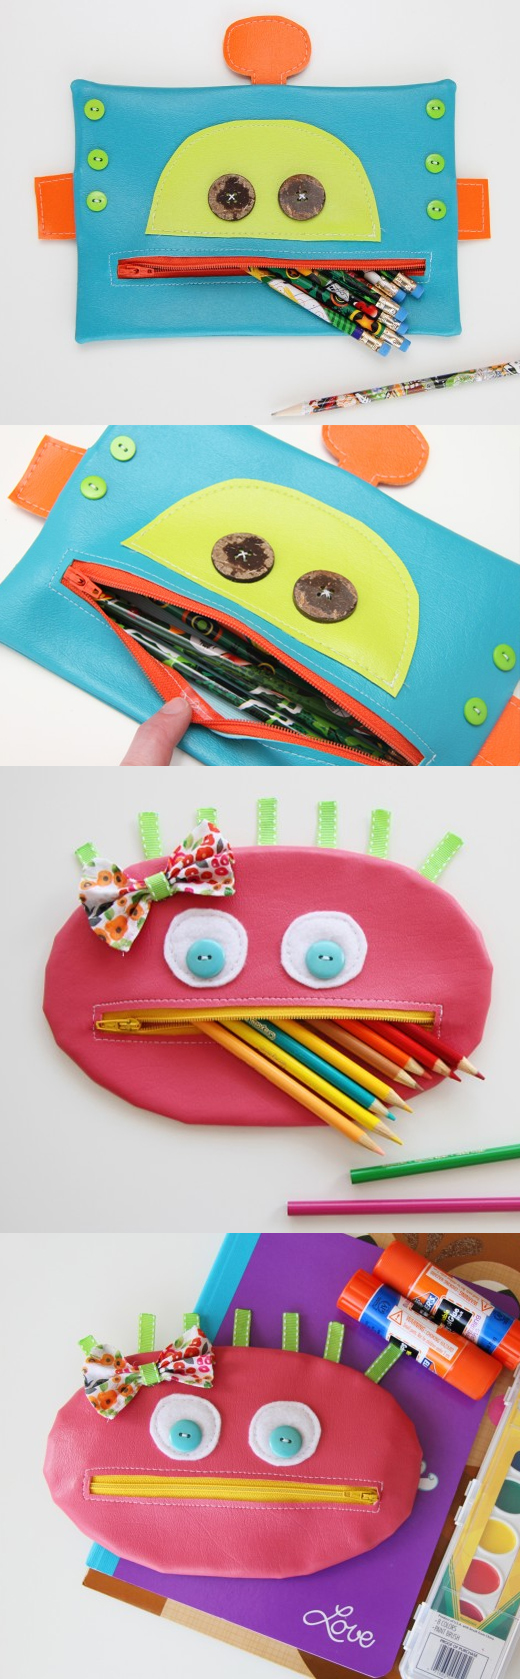 pencil case craft ideas